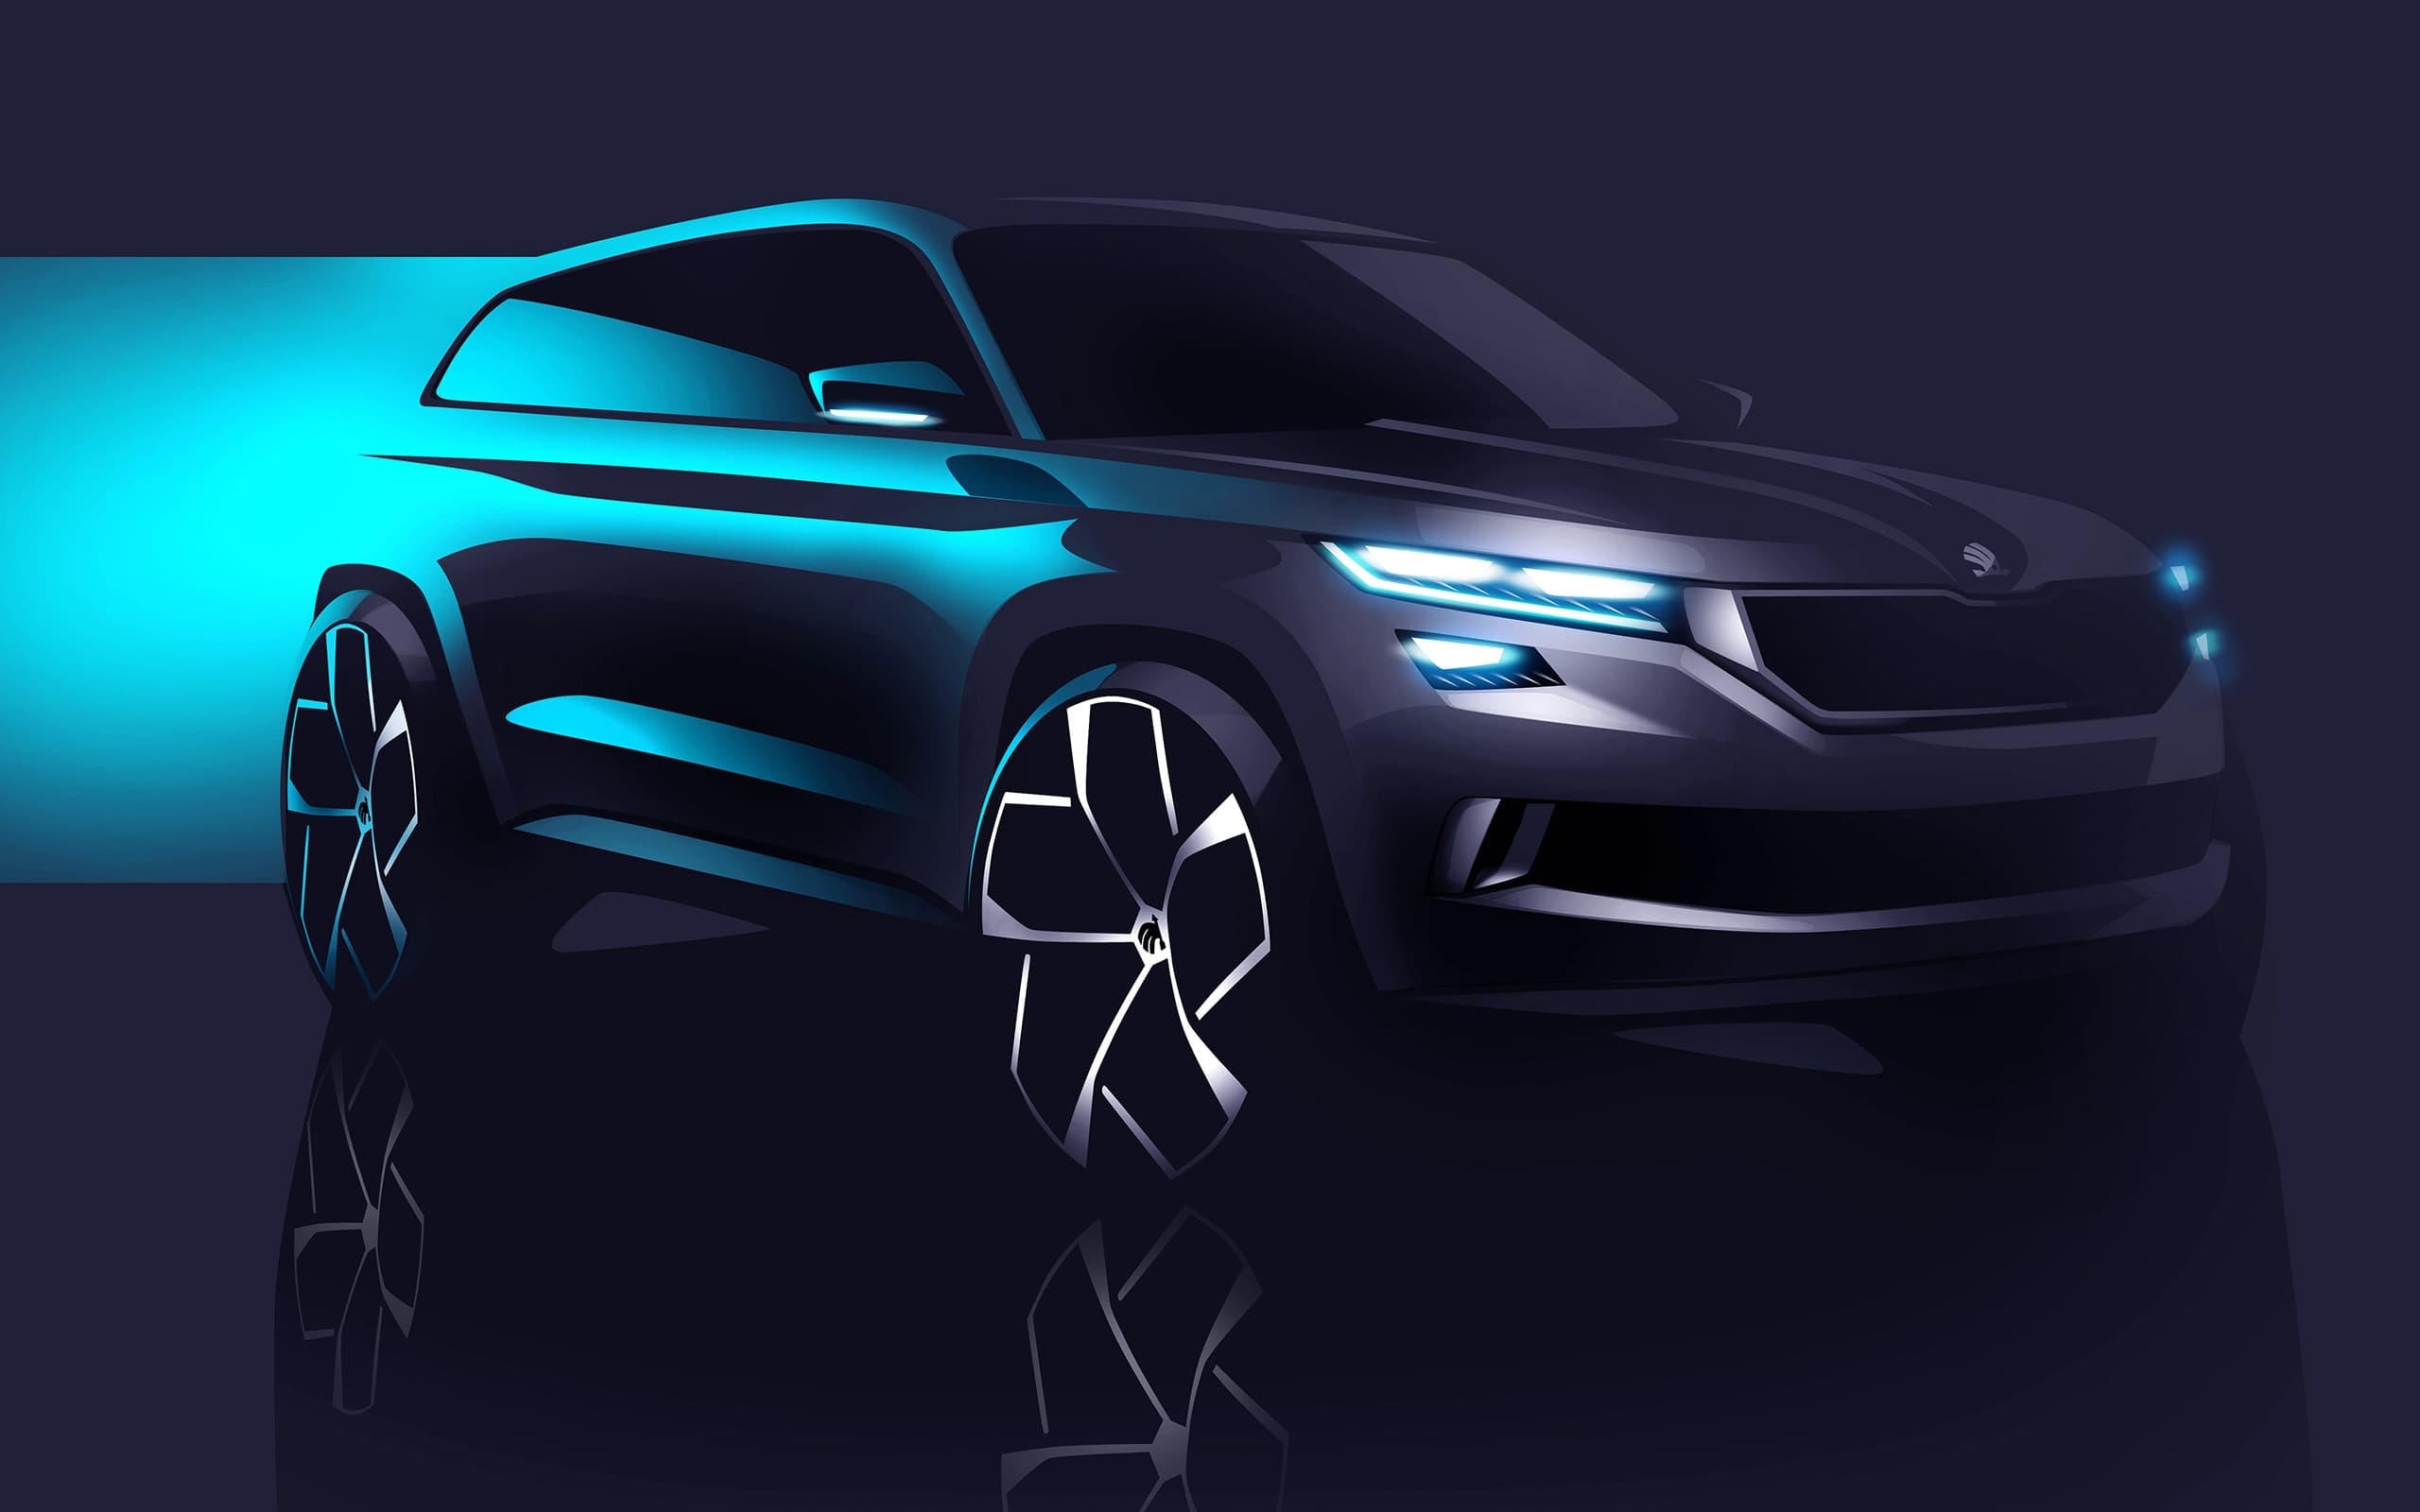 2016 Skoda Vision S Concept Wallpapers, Blue, Green, High ...